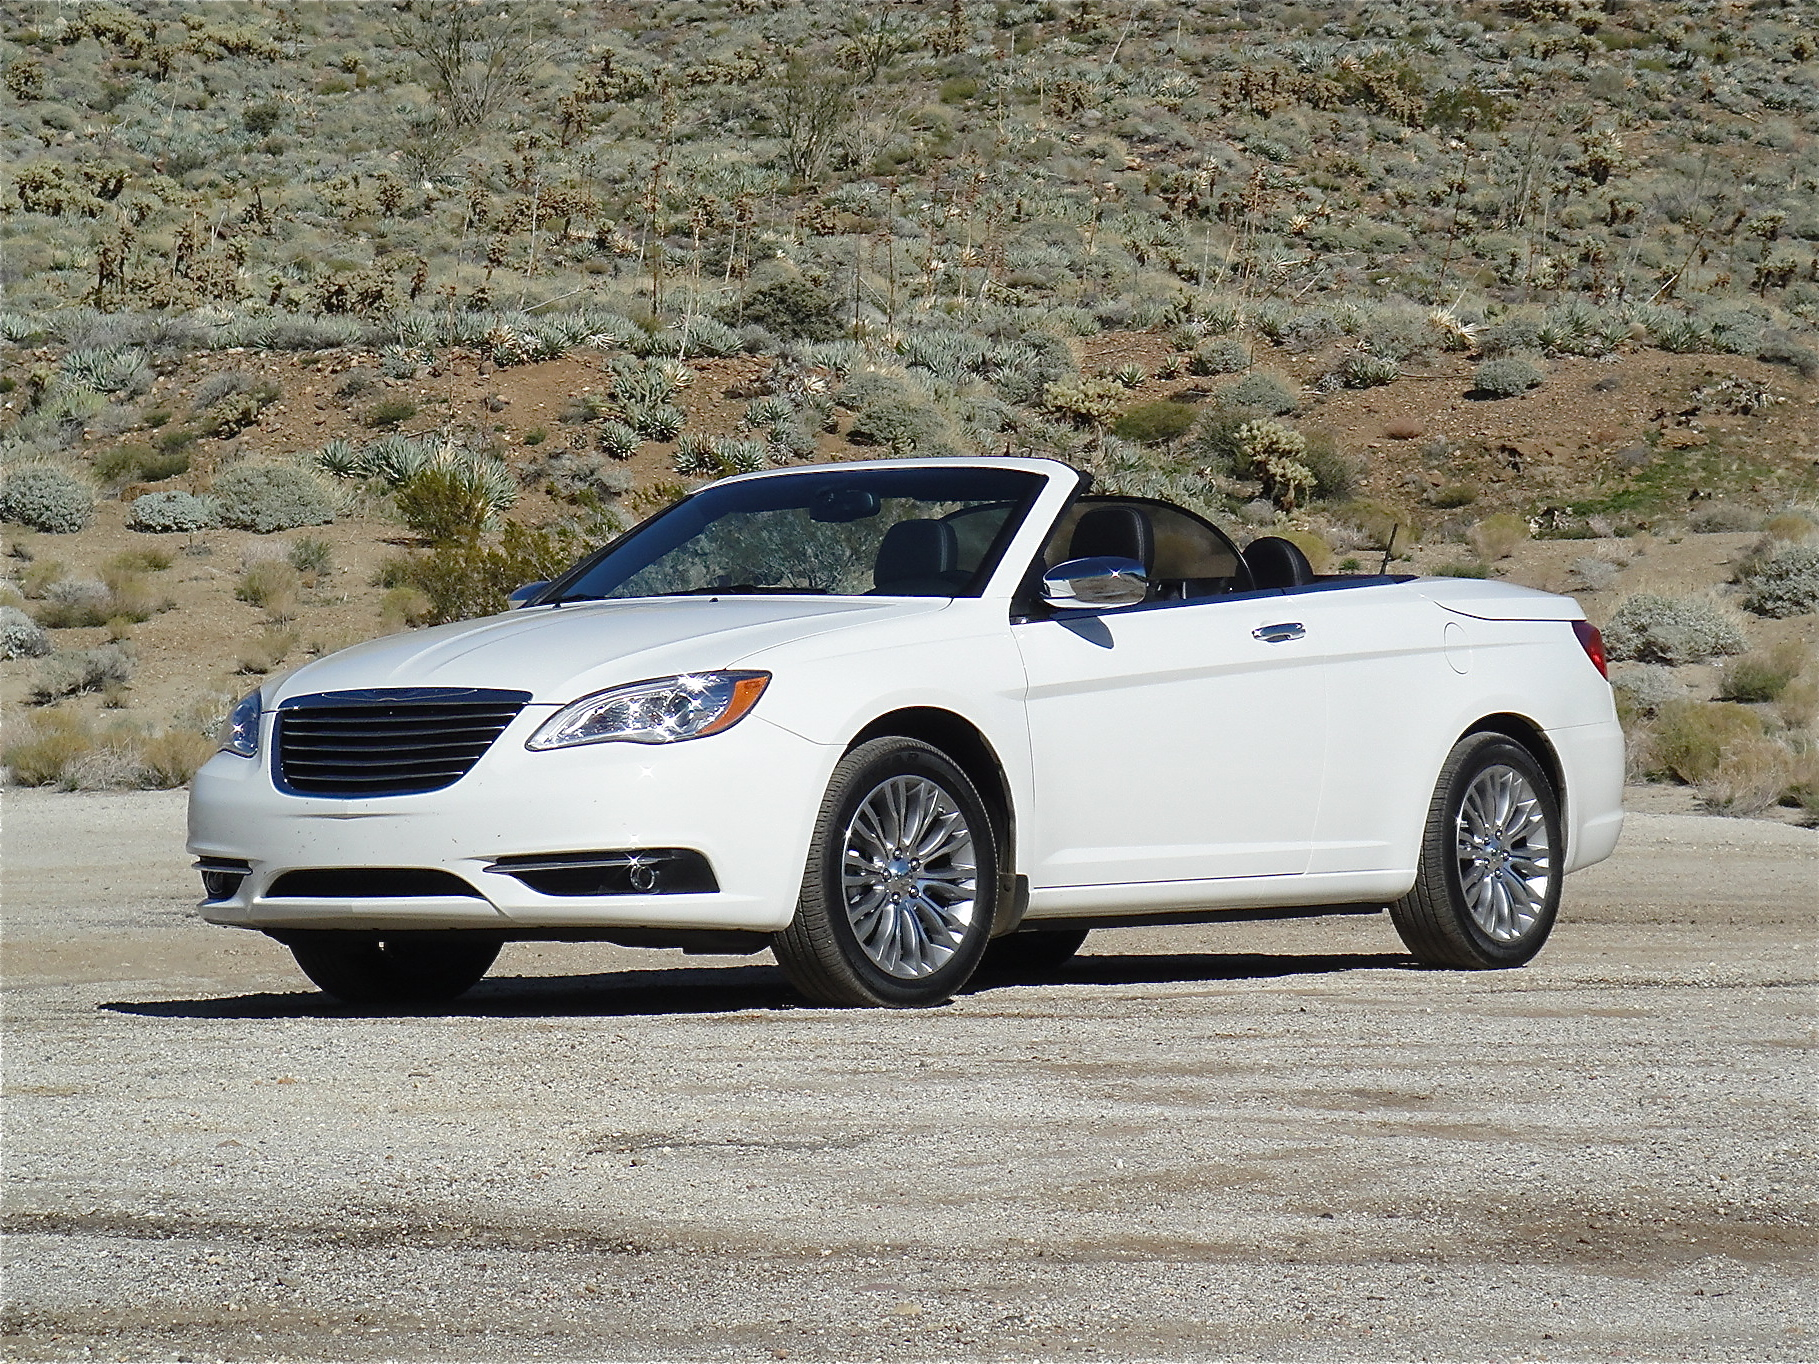 2013 Chrysler Crossfire